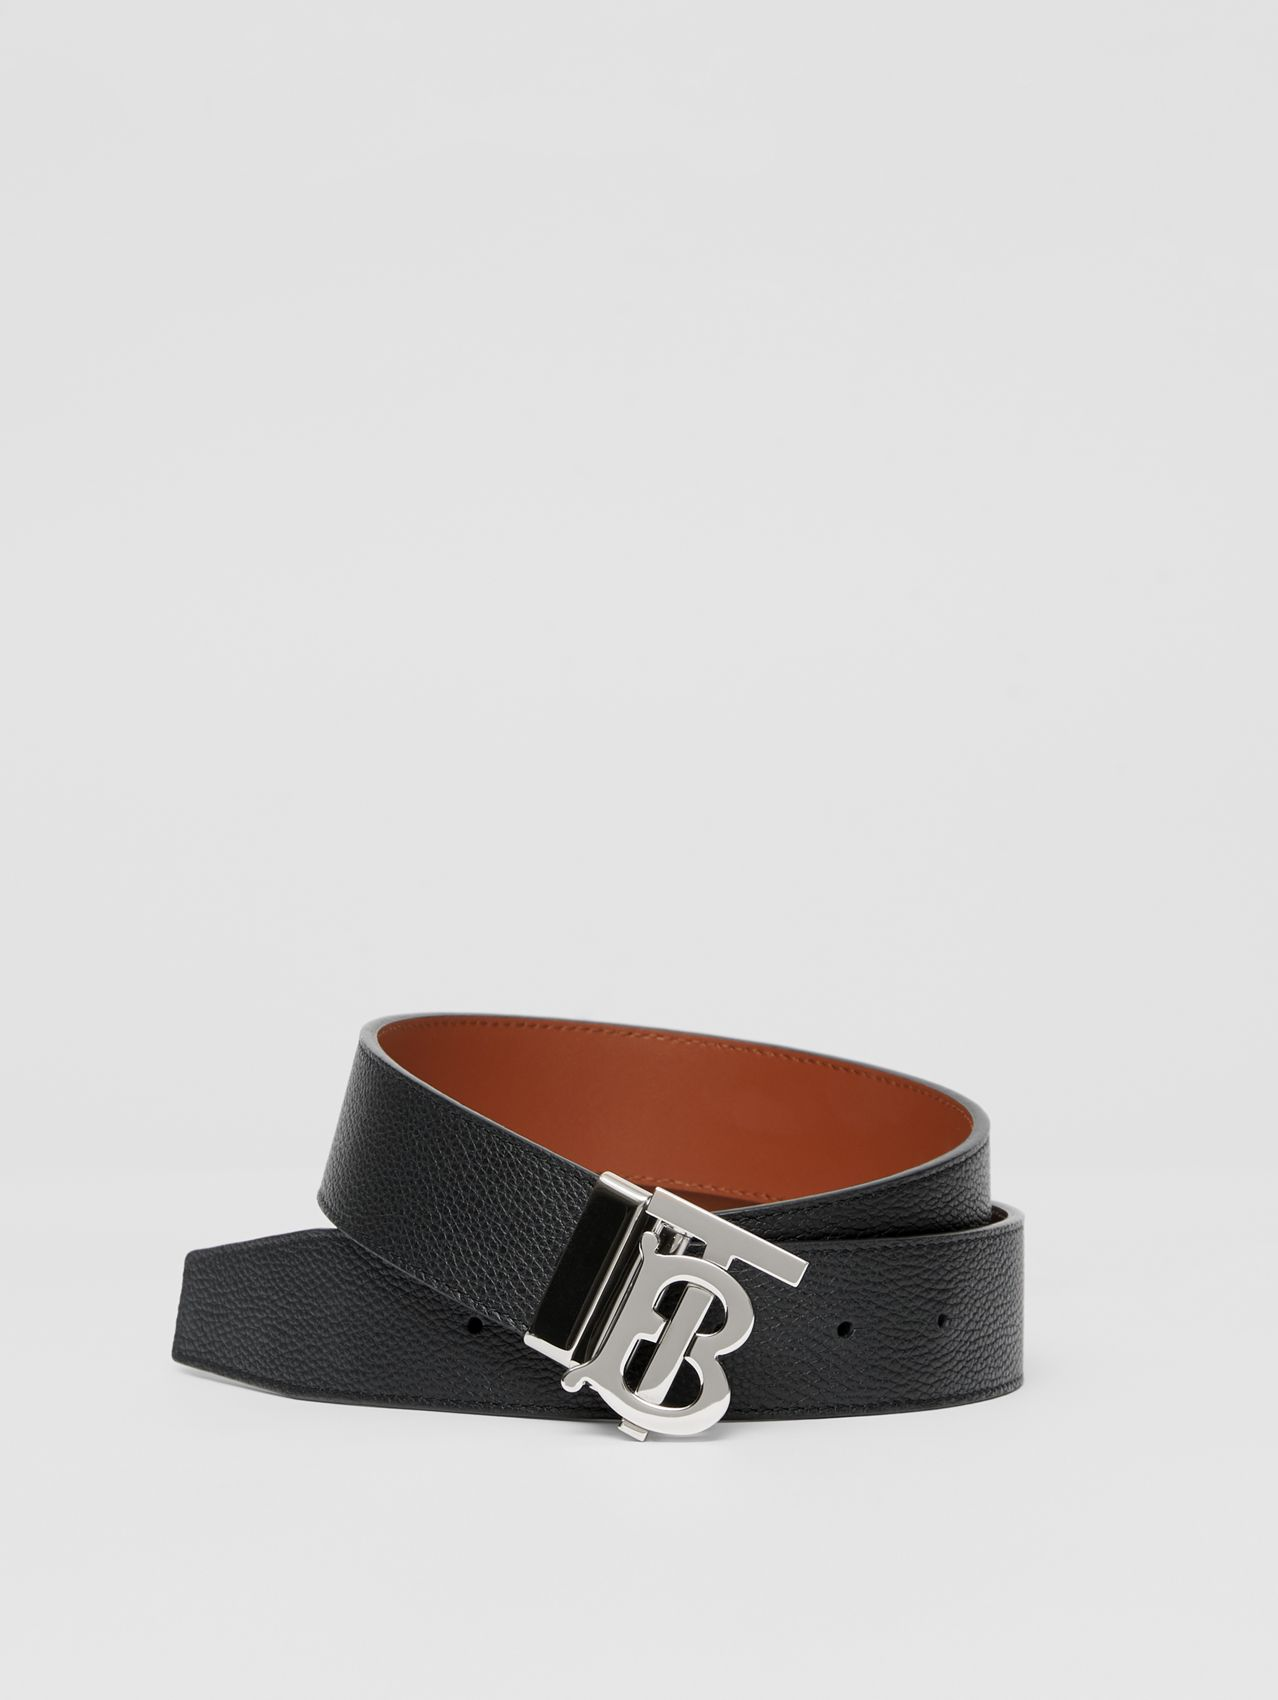 Reversible Monogram Motif Leather Belt (Black/tan)